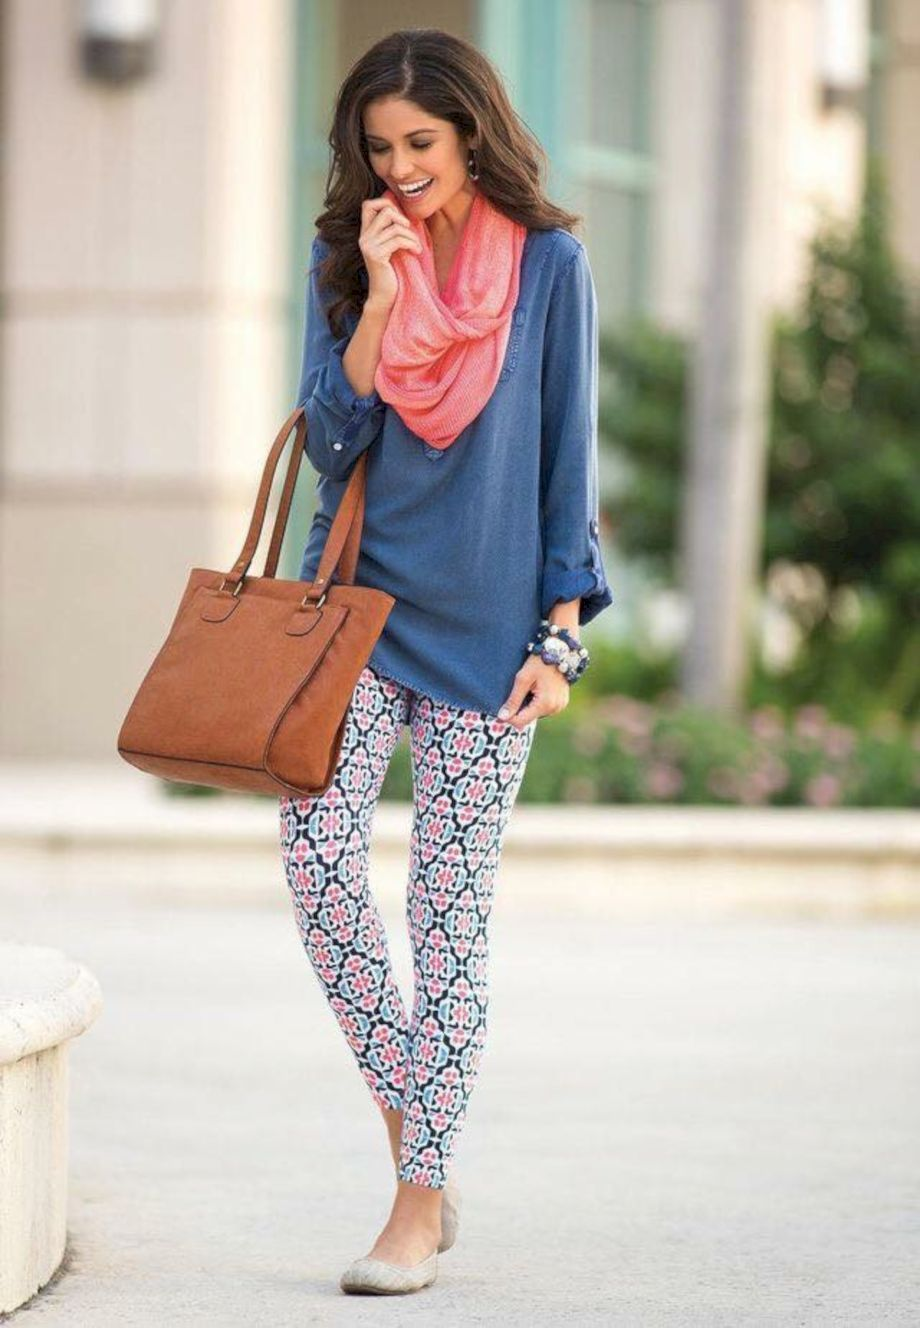 Leggings Patterned outfit ideas video